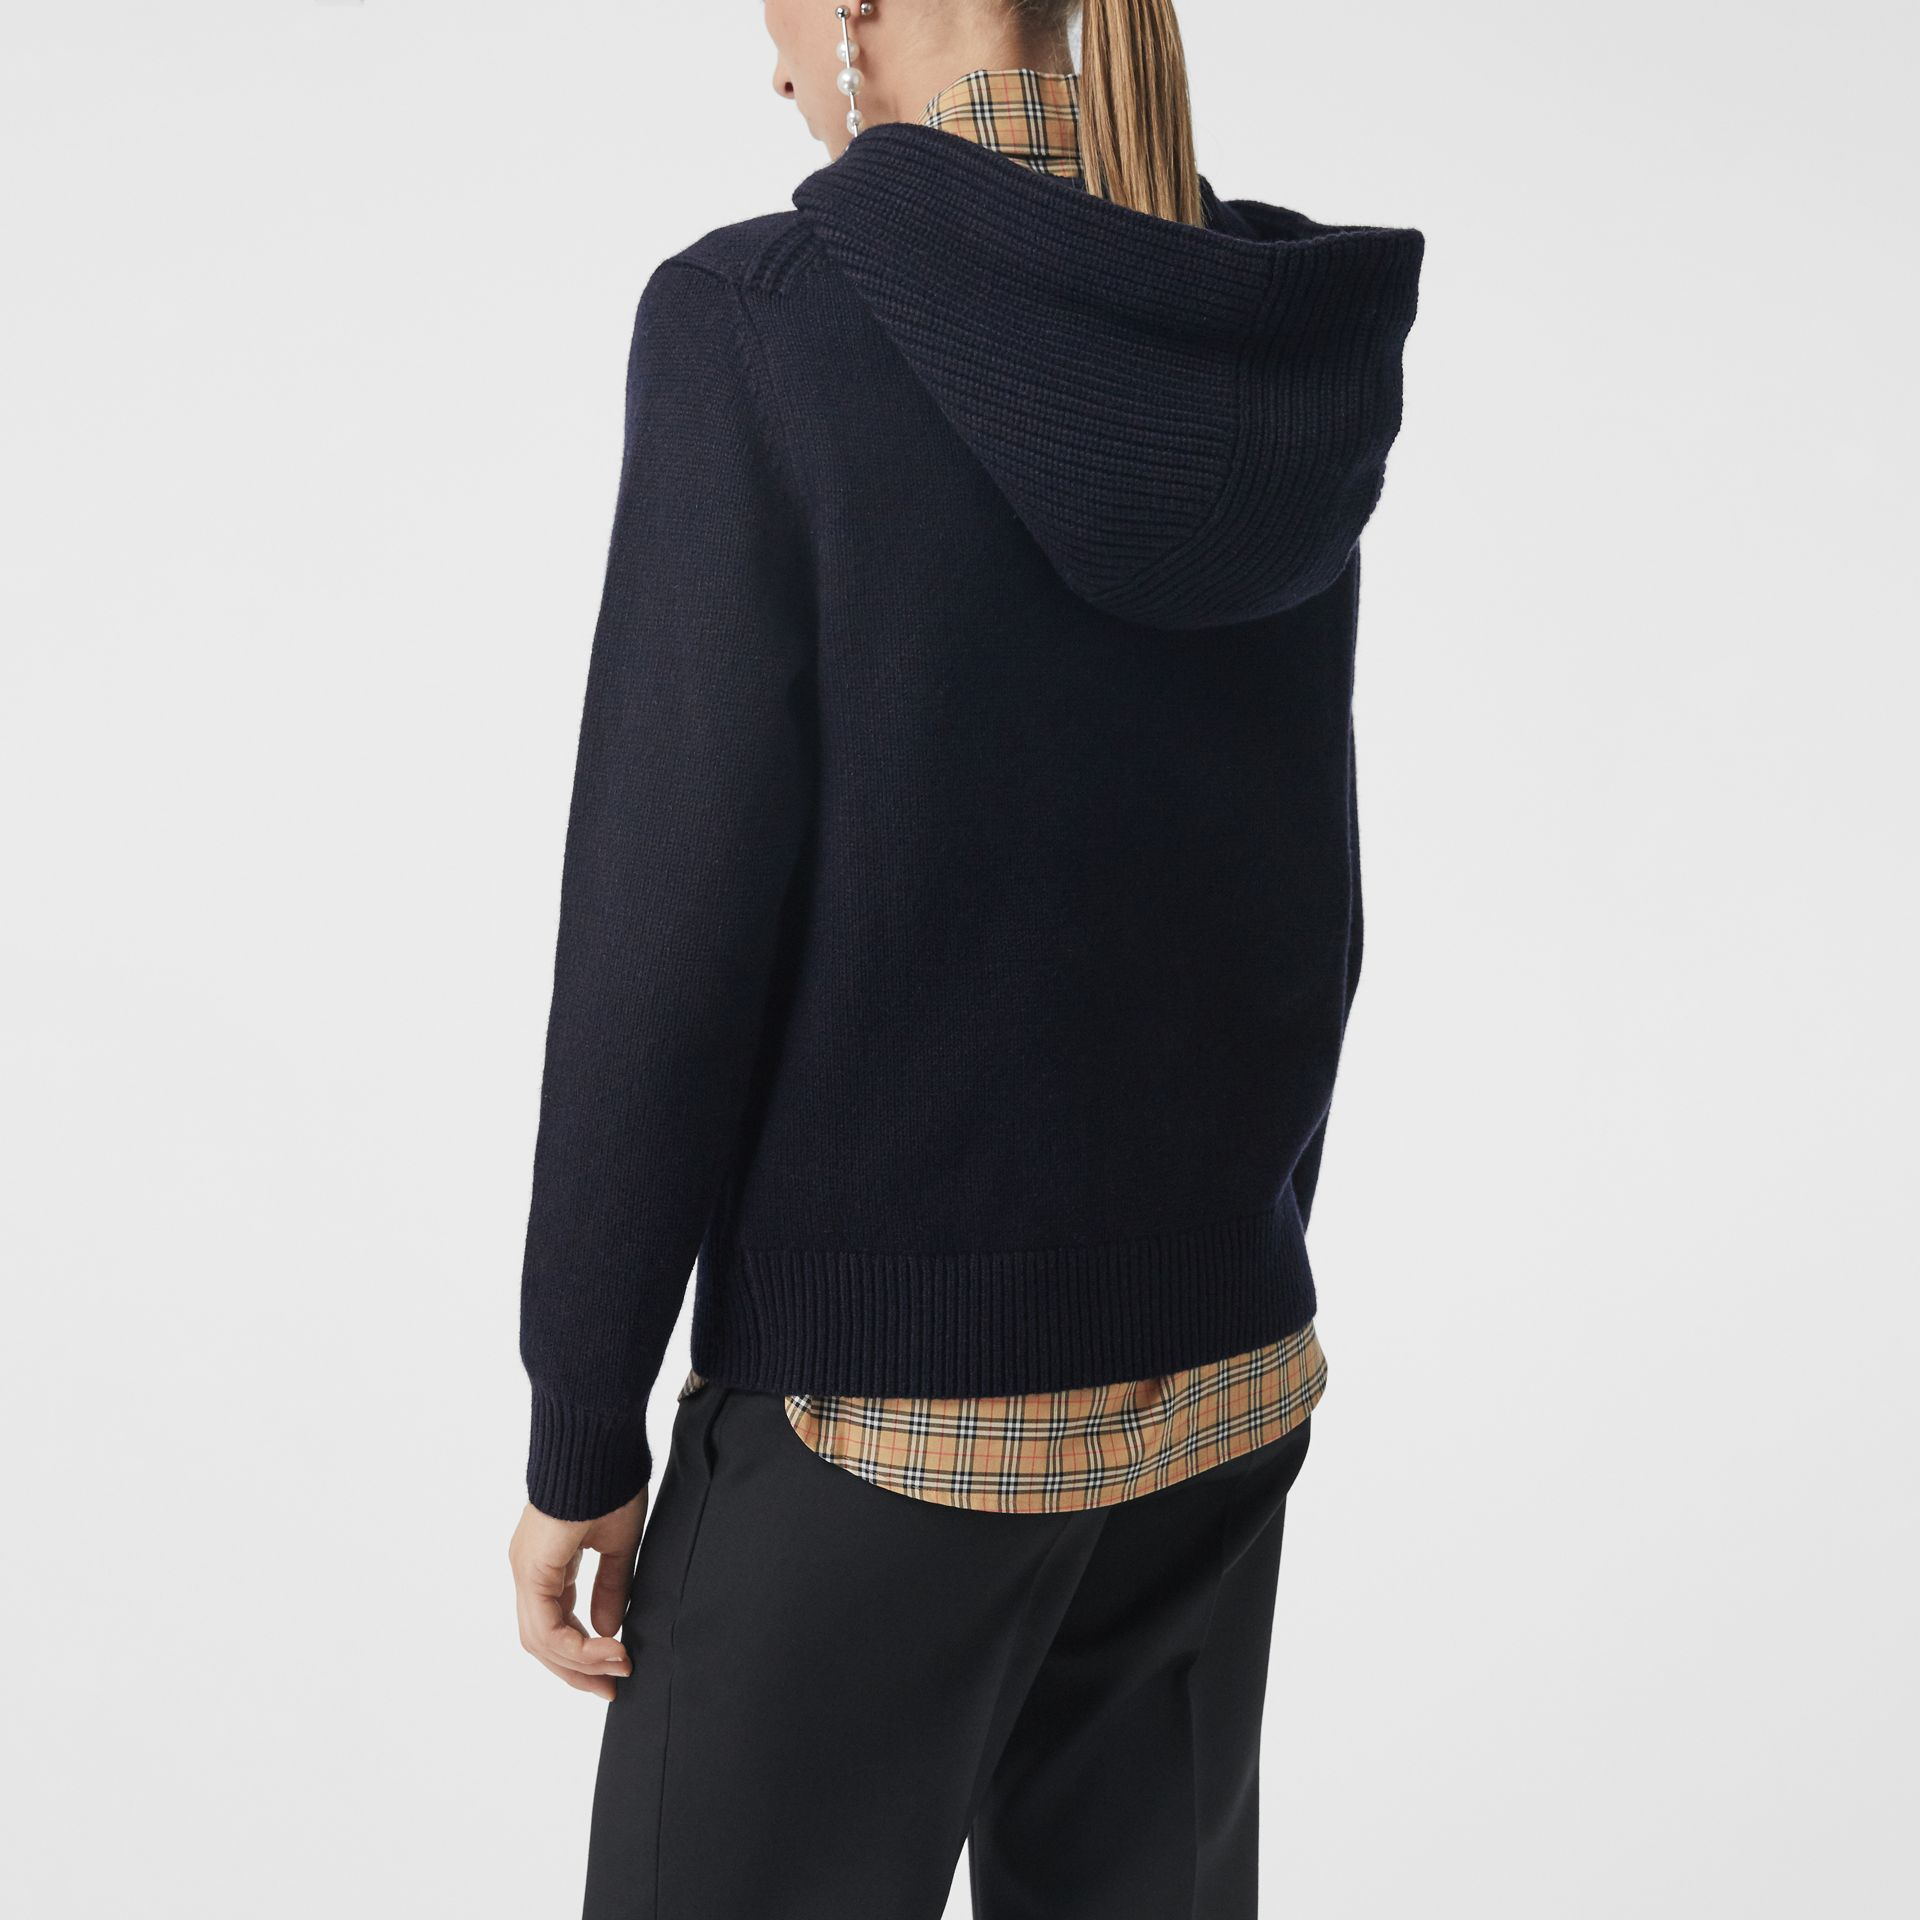 Embroidered Crest Cashmere Hooded Top in Navy - Women | Burberry Hong Kong - gallery image 2